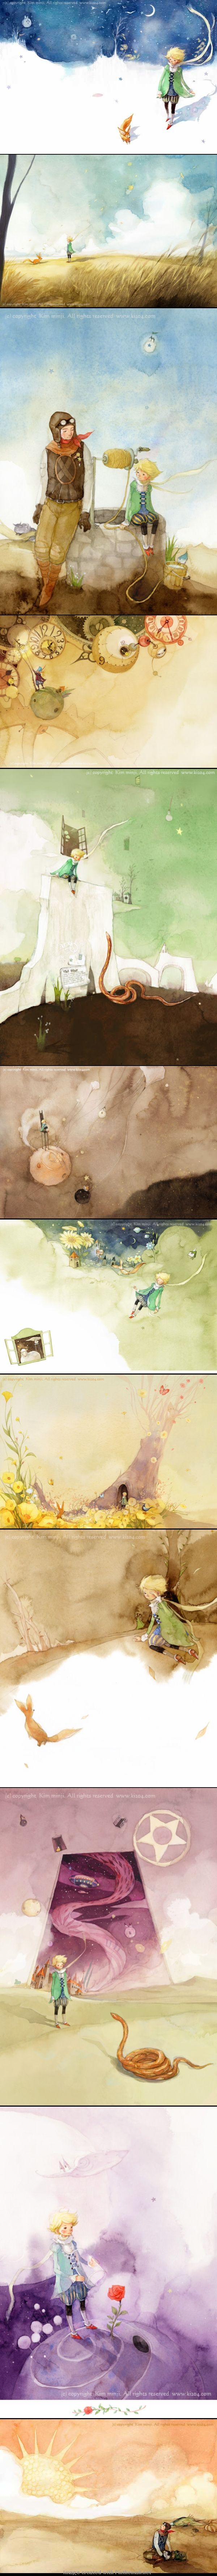 Kim Min Ji The Little Prince